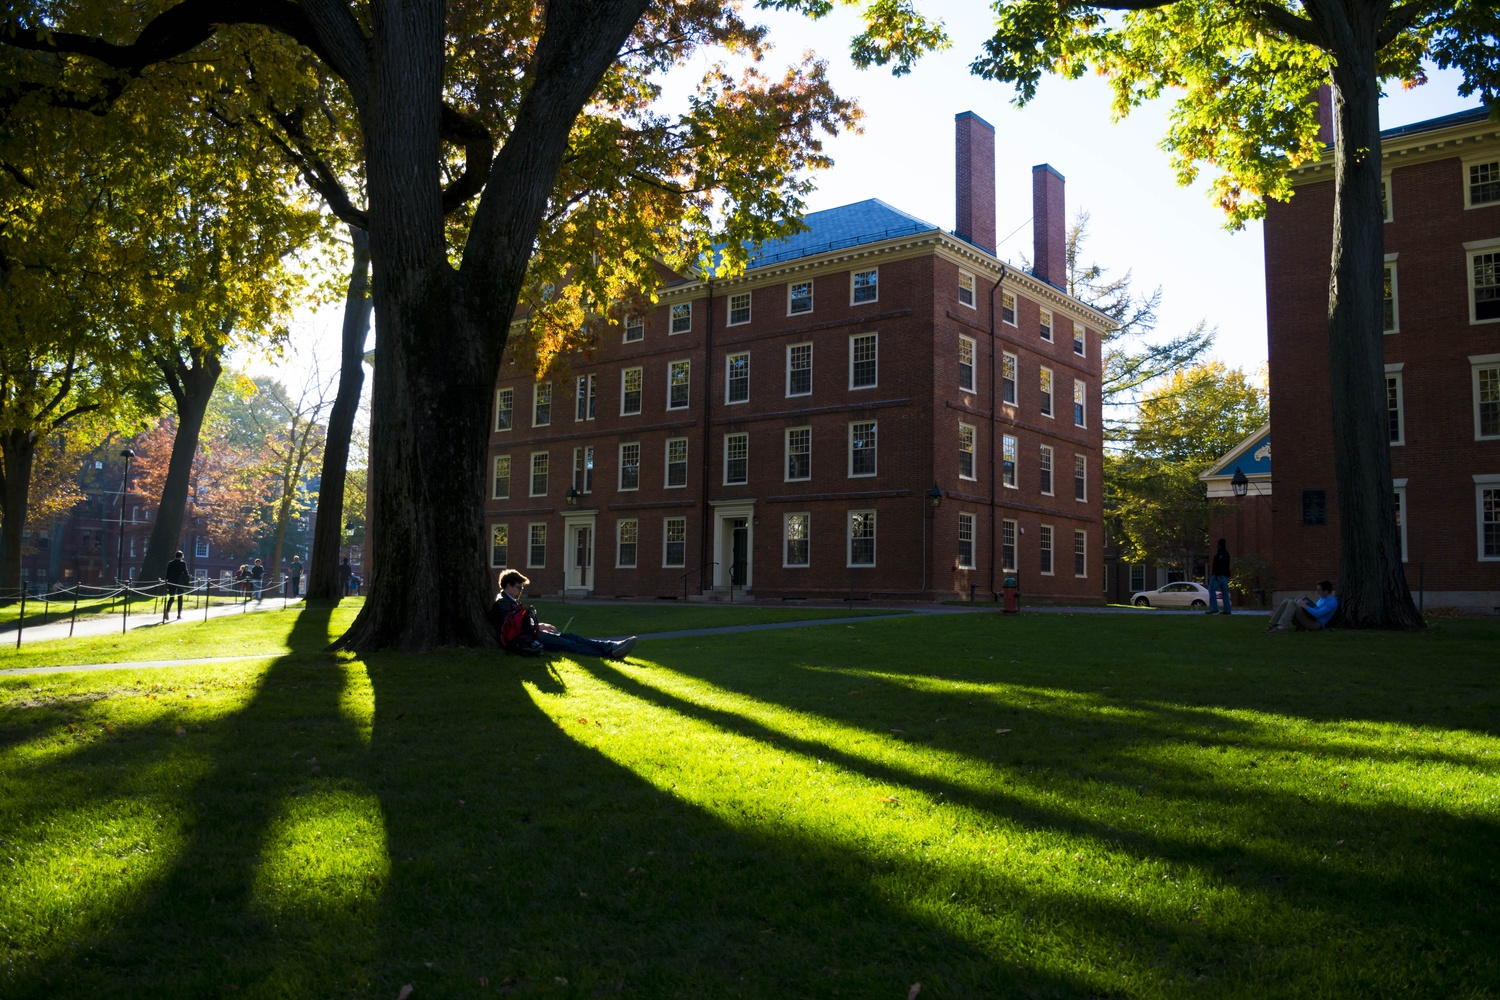 Harvard received roughly $9 million in federal funding via the CARES Act.